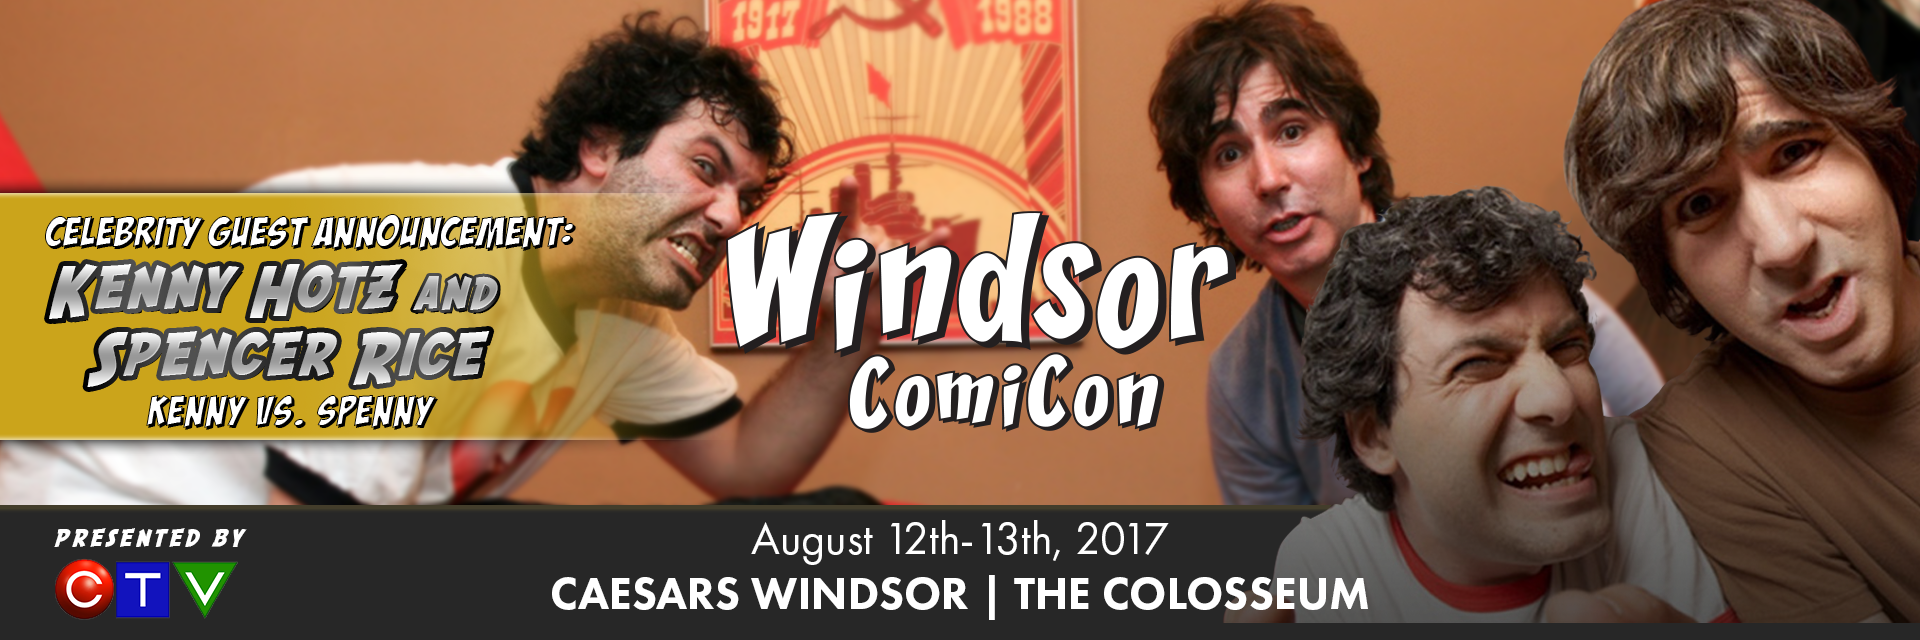 Kenny Hotz and Spencer Rice to attend Windsor ComiCon 2017